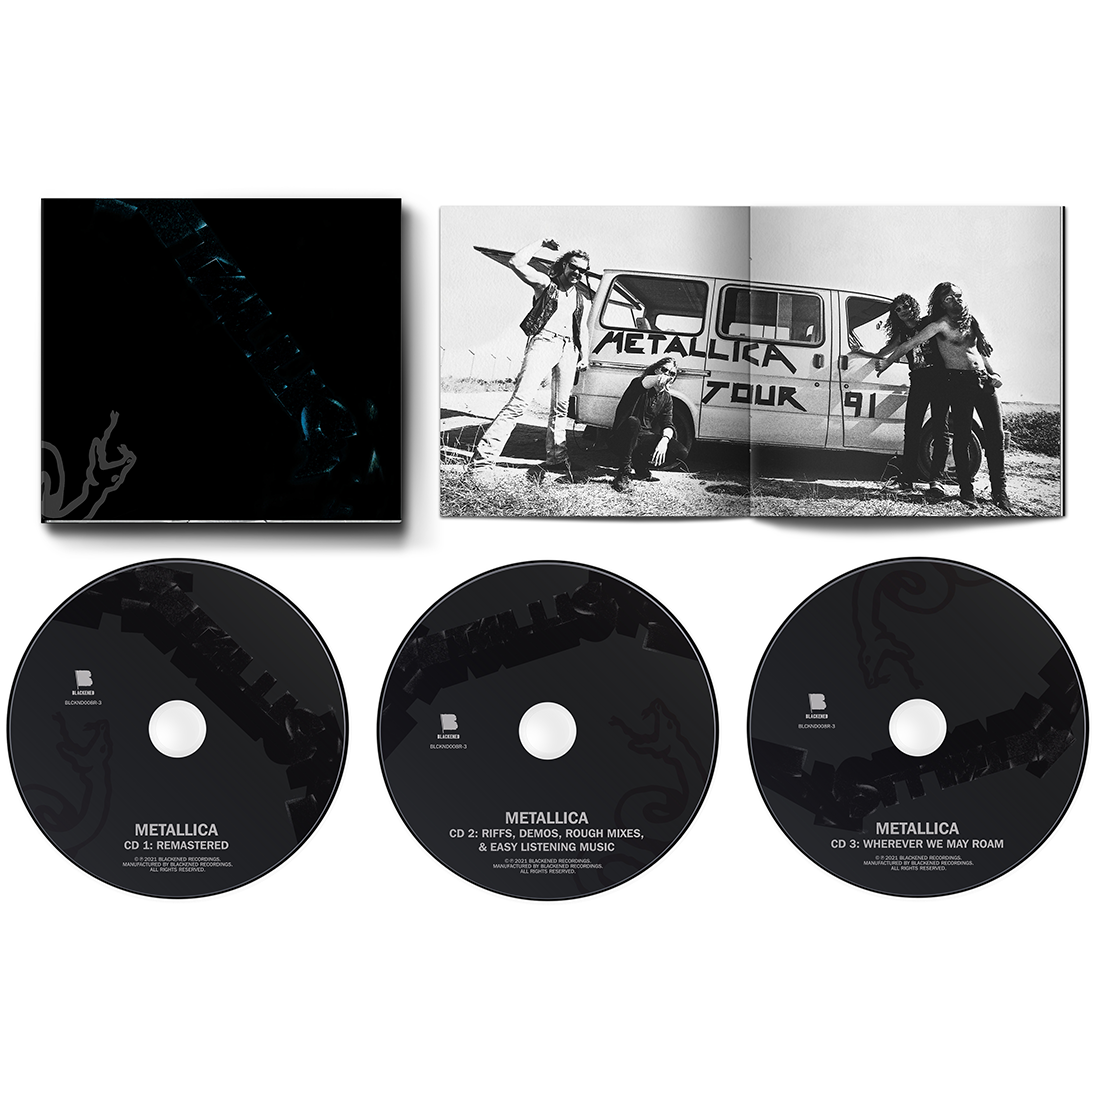 The Black Album (Remastered) 3CD Expanded Edition